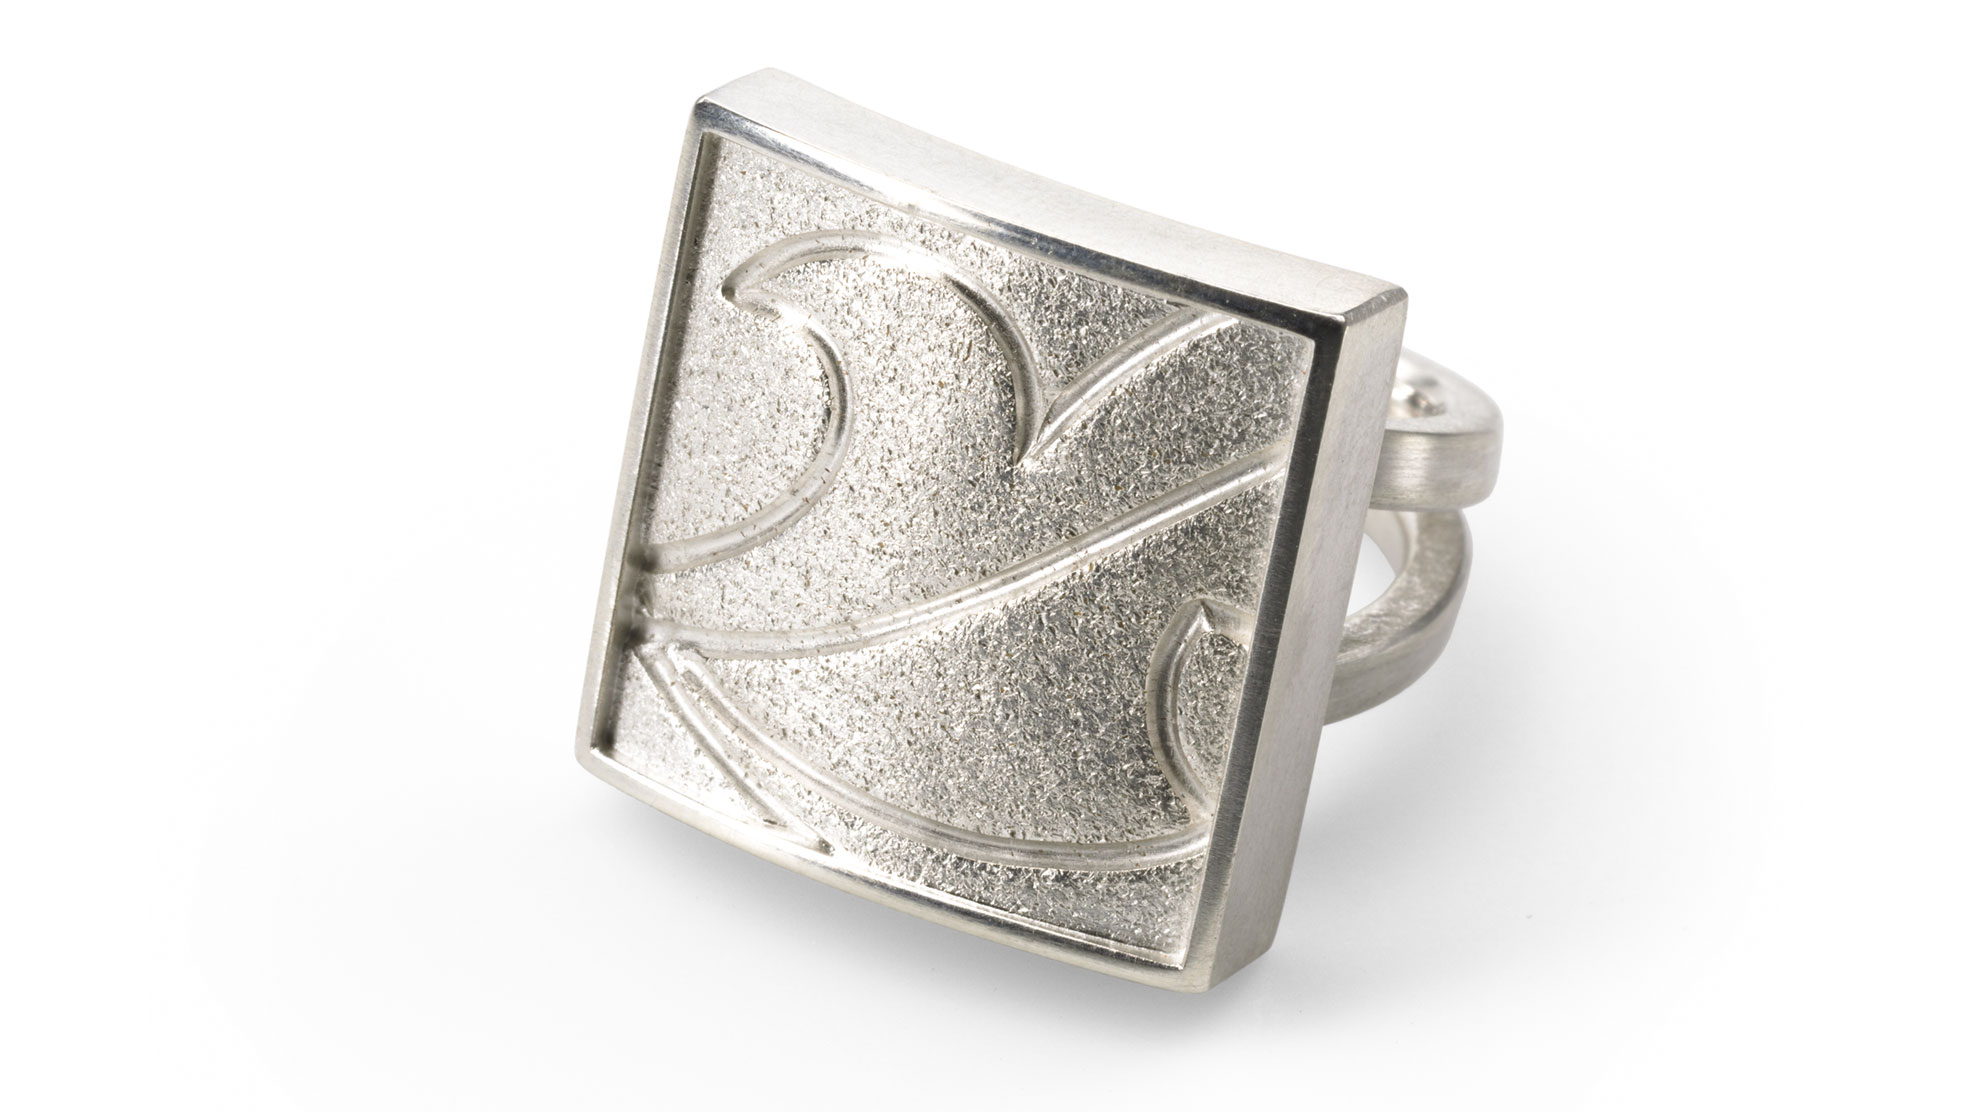 19 Ring Relief 925 Silber